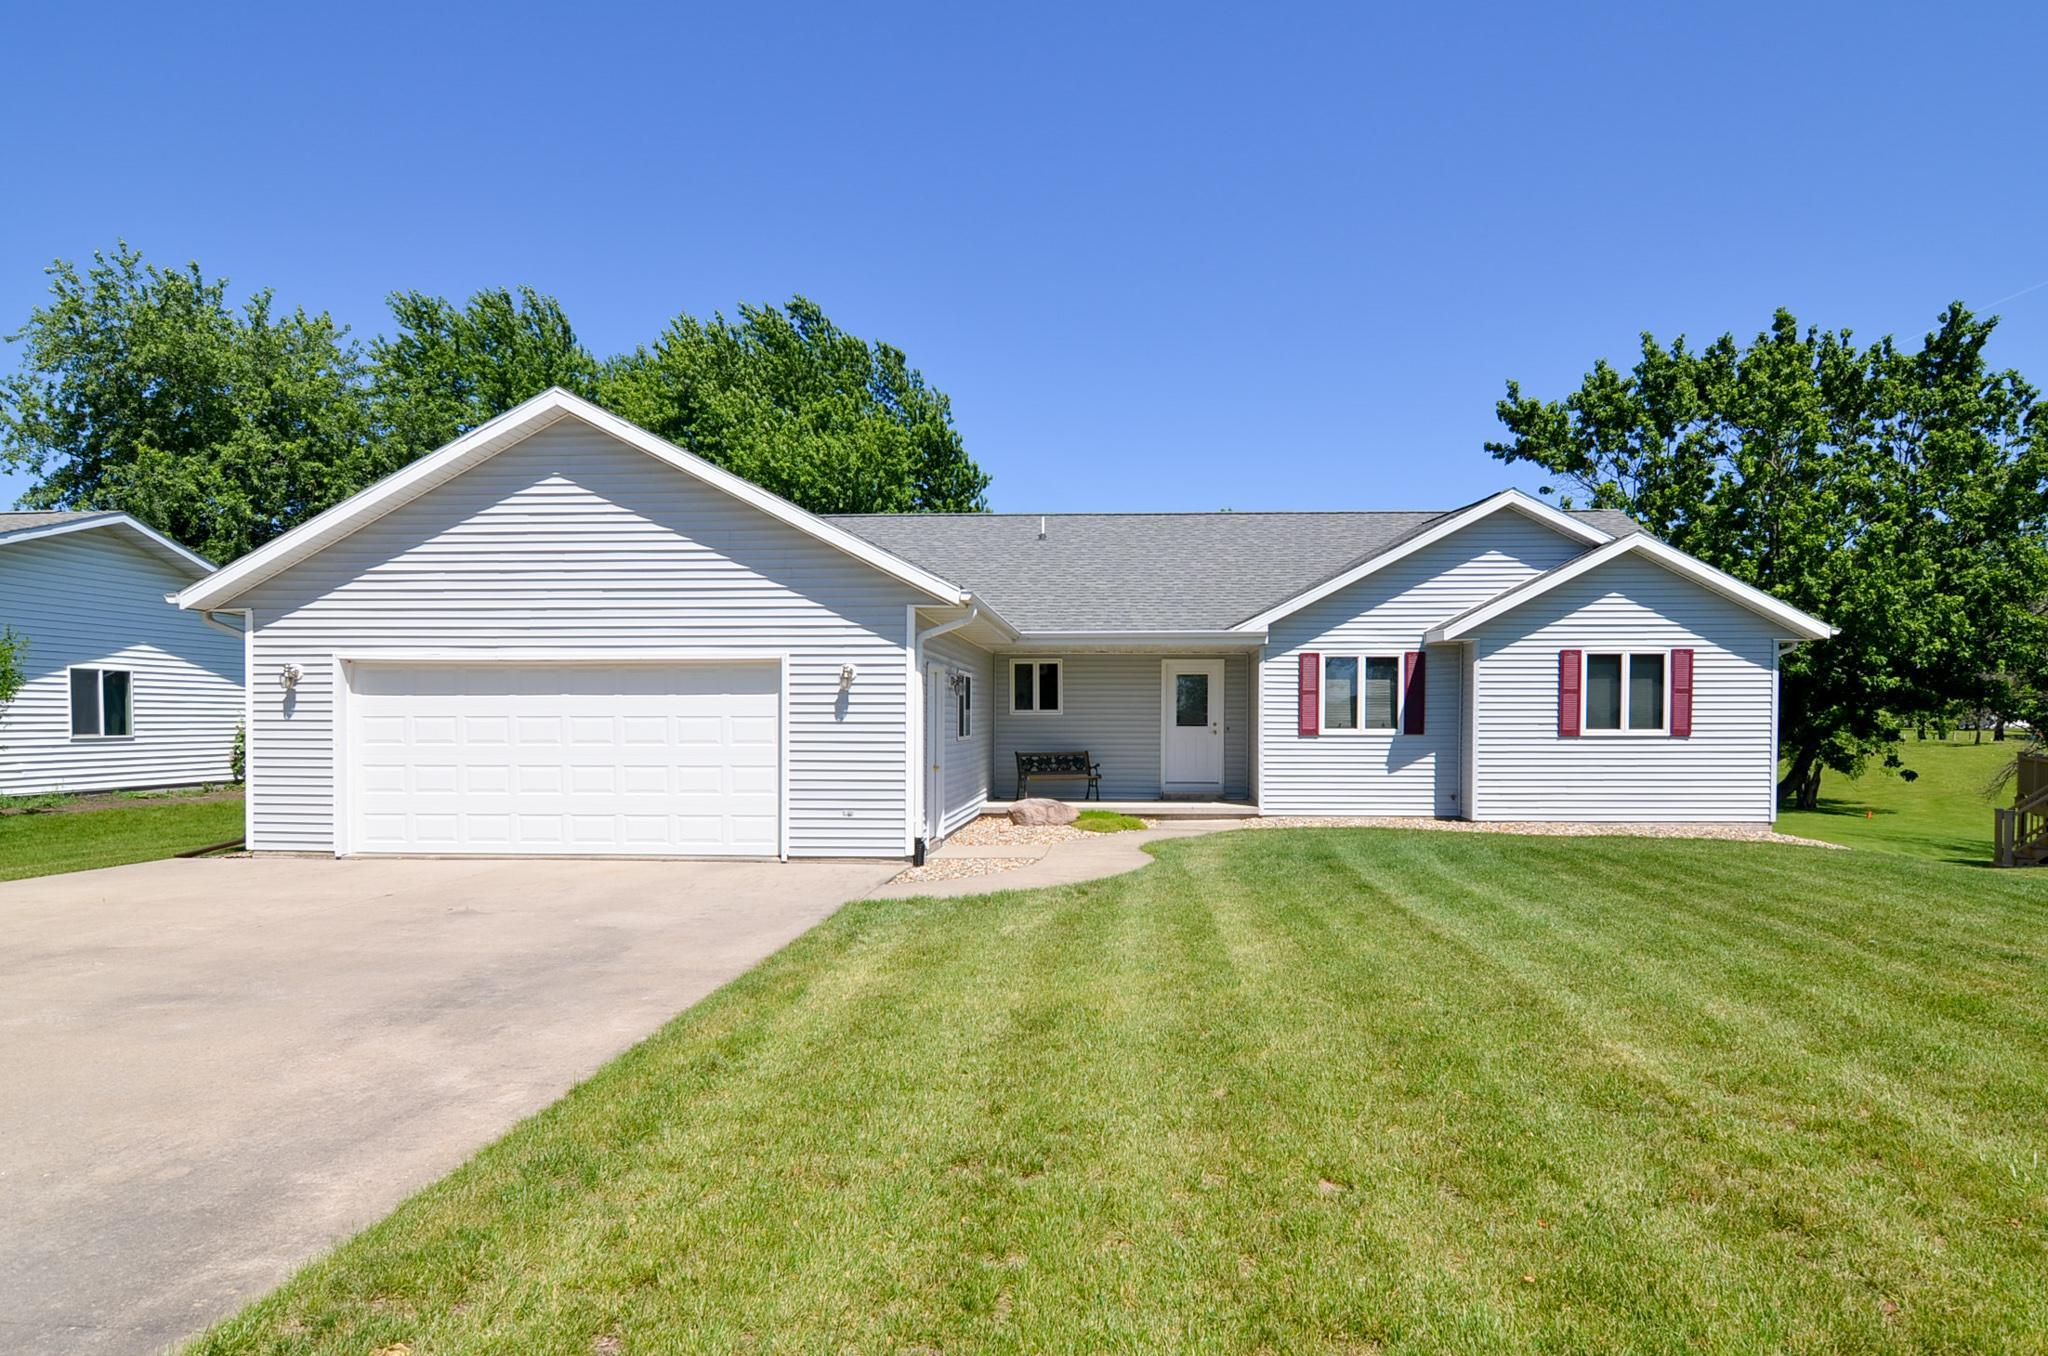 103 Meadow Lane, Montezuma, Iowa 50171-0186, 3 Bedrooms Bedrooms, ,1 BathroomBathrooms,Single Family,For Sale,Meadow Lane,5610109